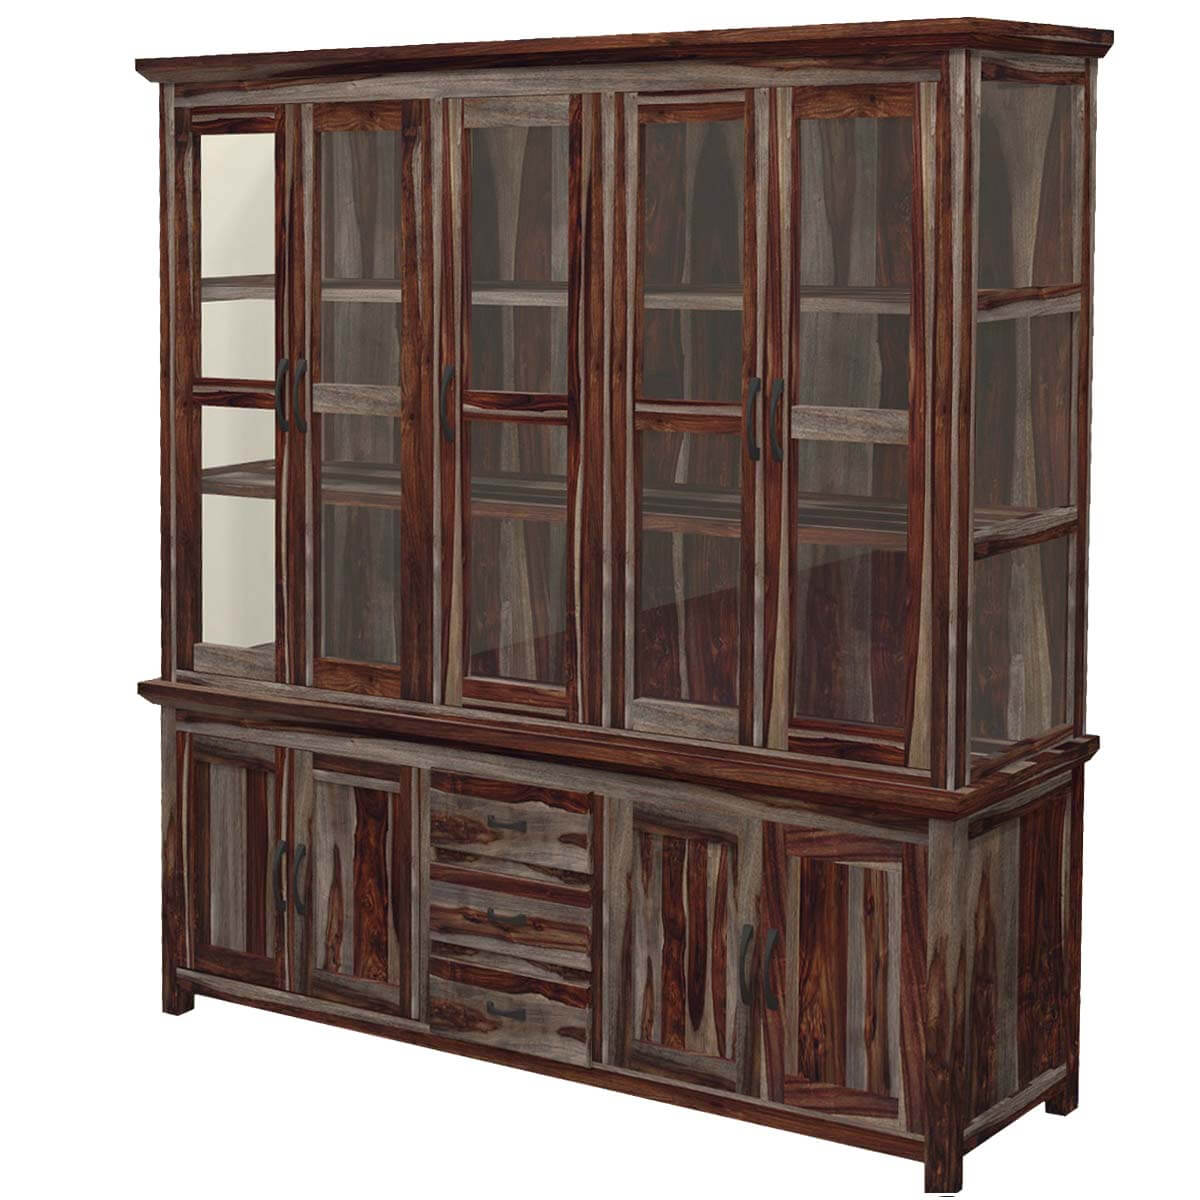 Dallas Ranch Rustic Solid Wood Glass Door Dining China Hutch